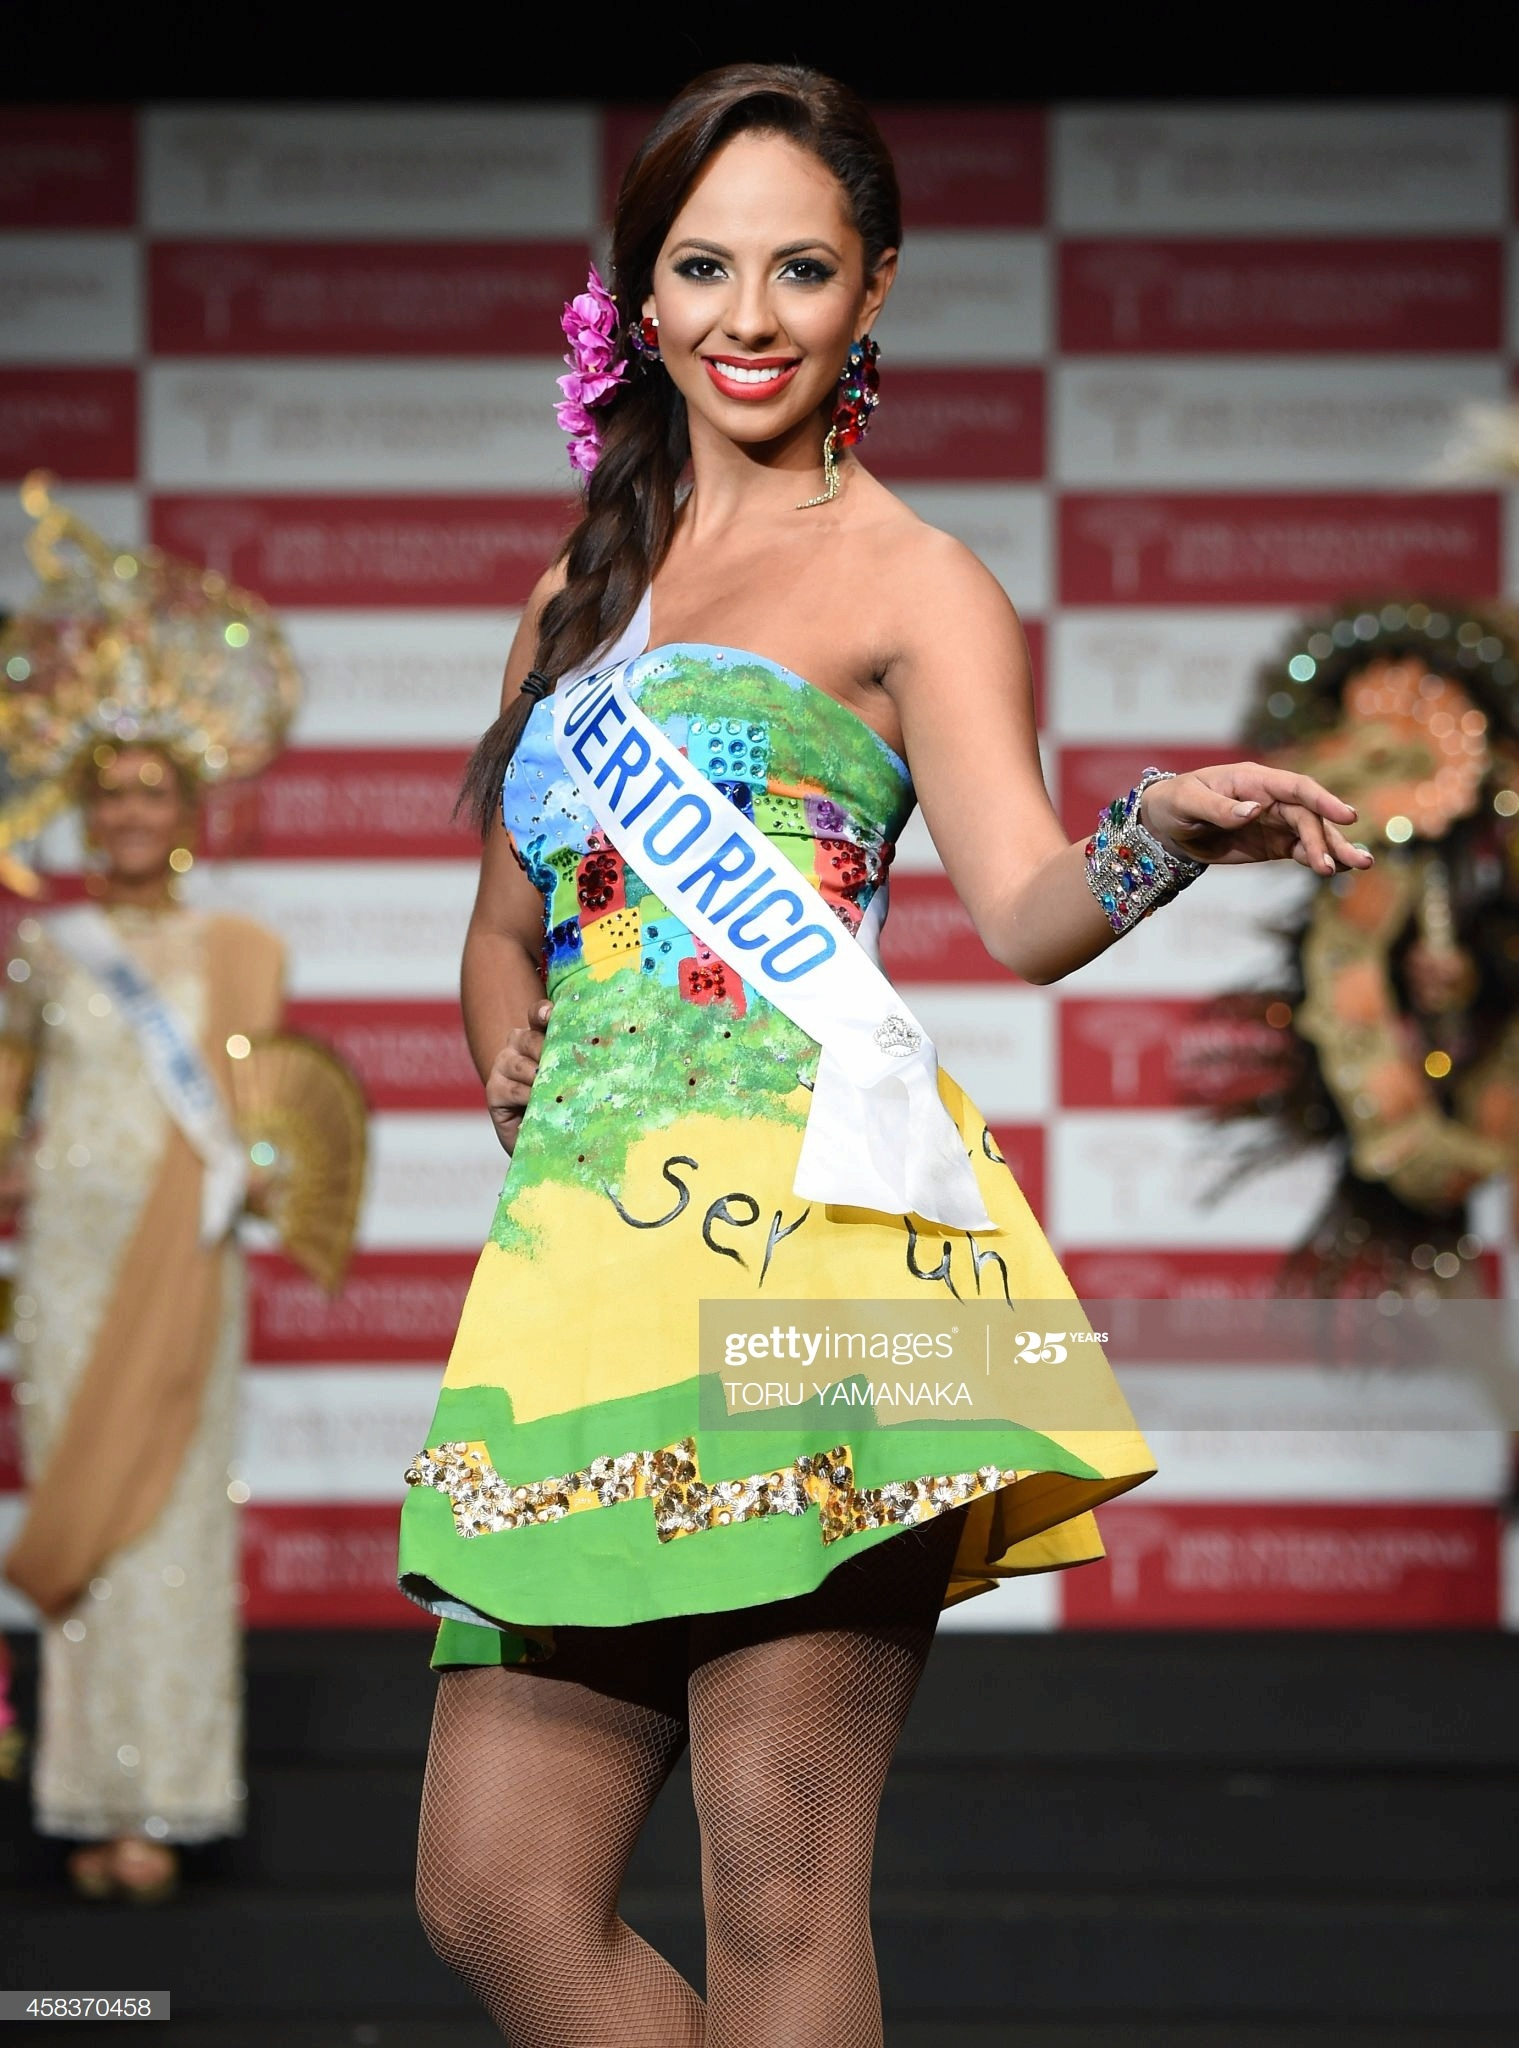 valerie hernandez, miss international 2014. Miss-p35